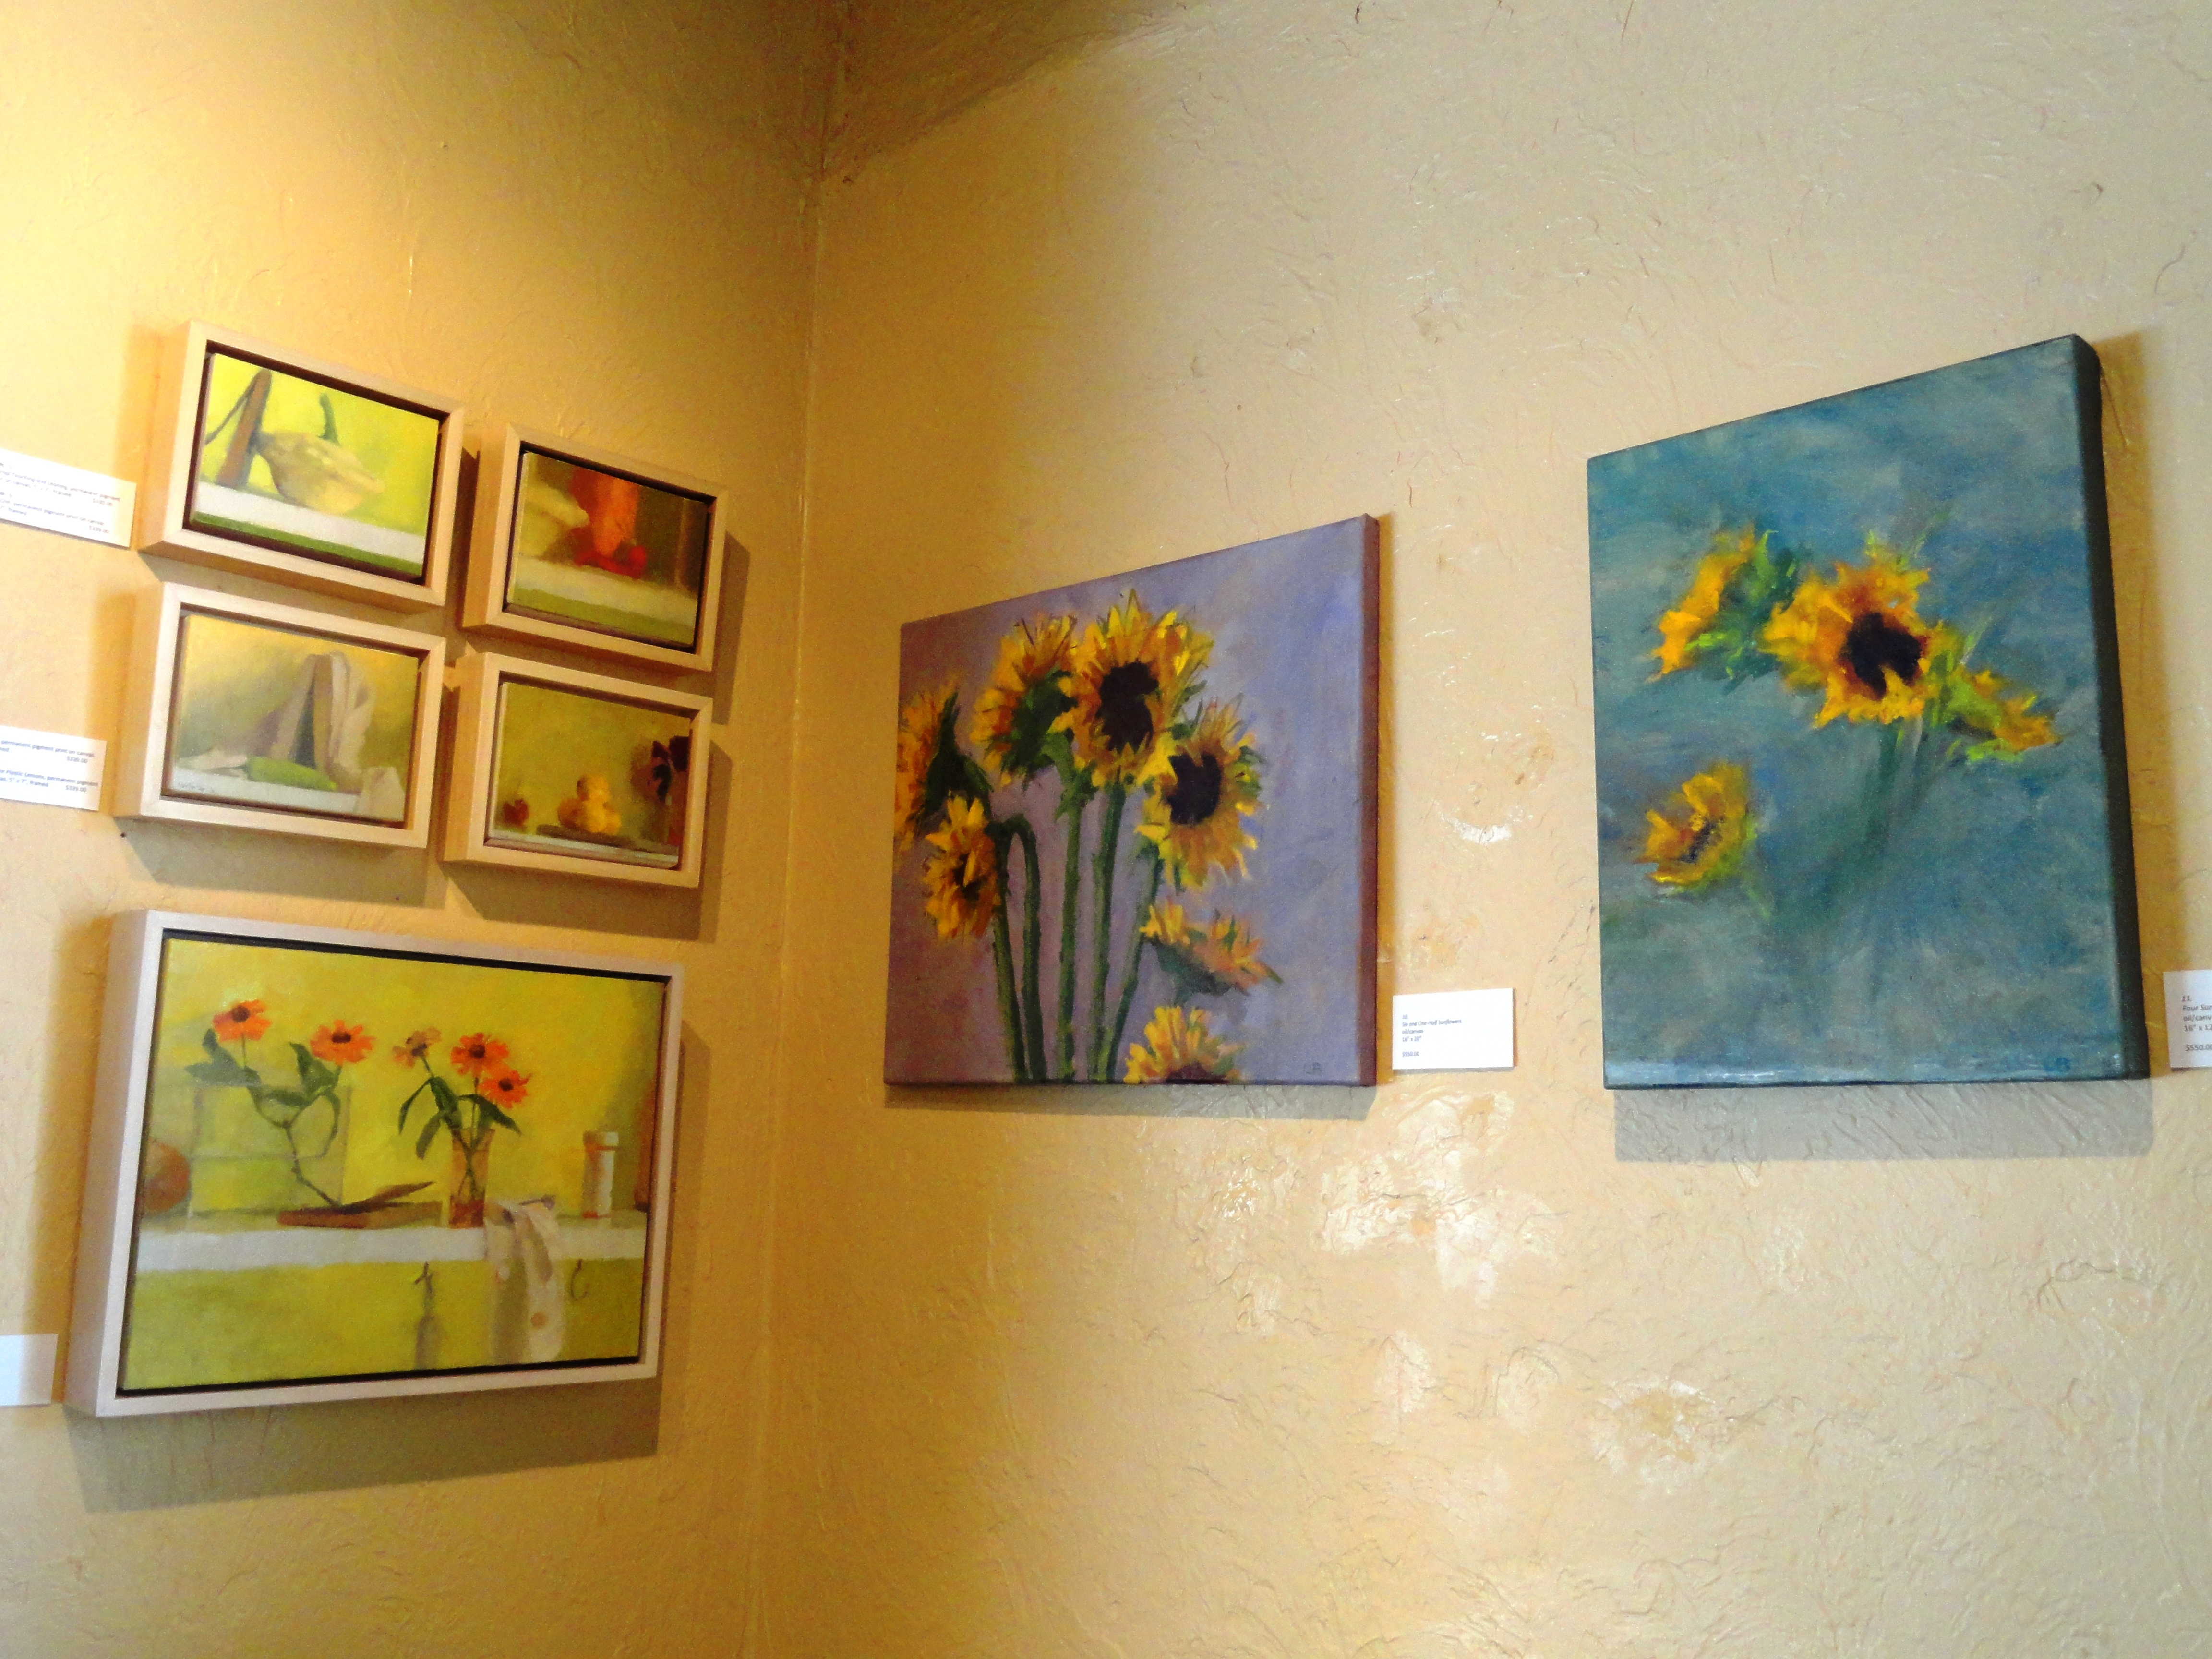 Works by artist Lucy Barber